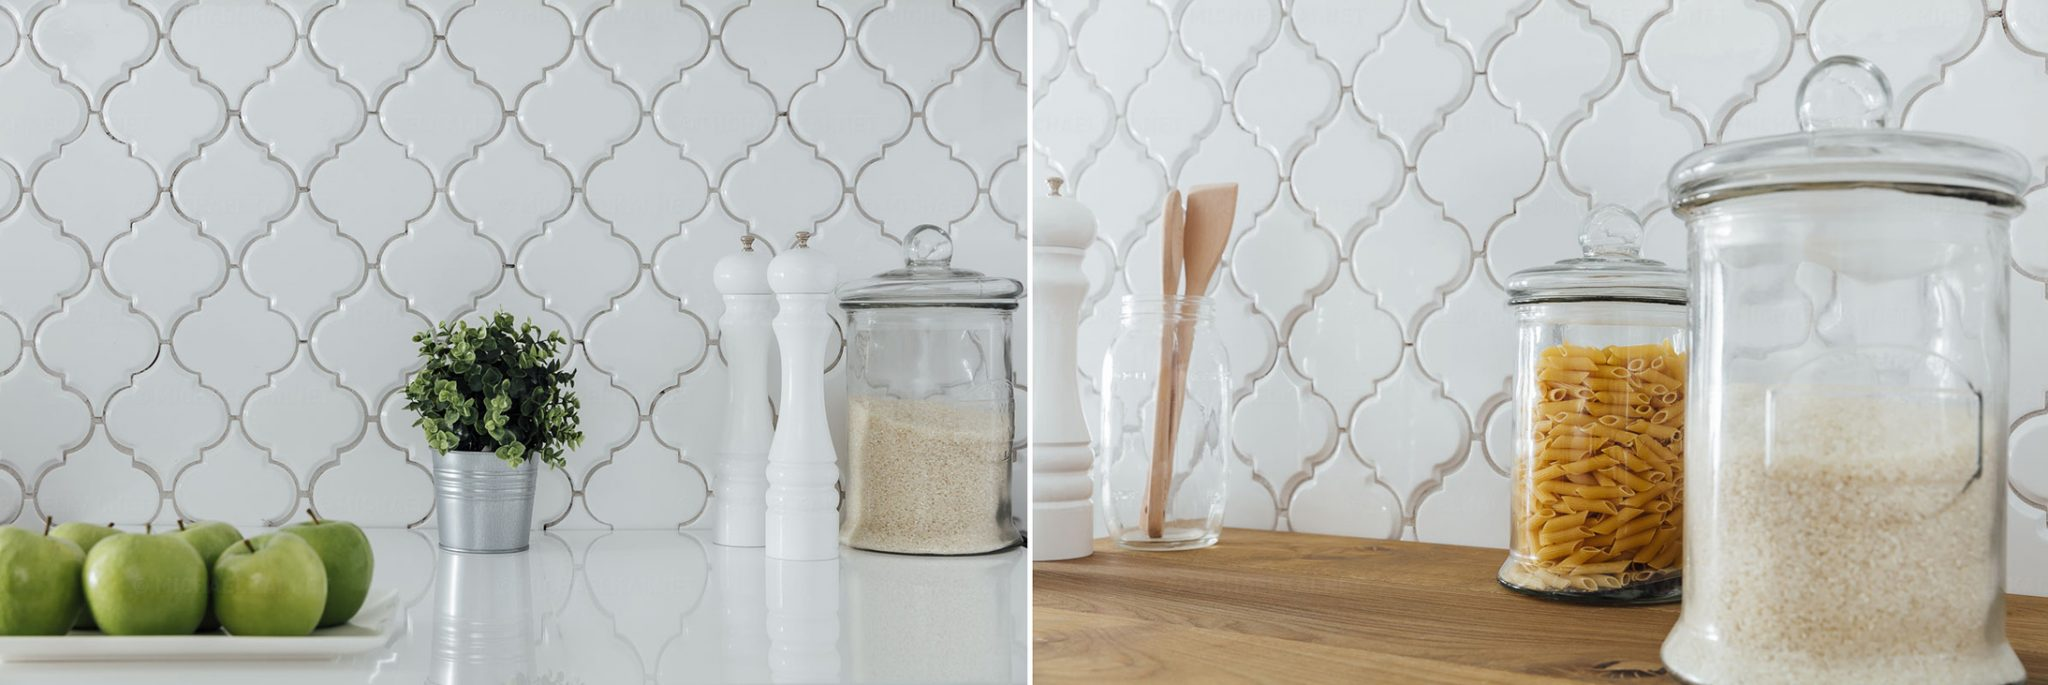 mosaic-kitchen-splashback